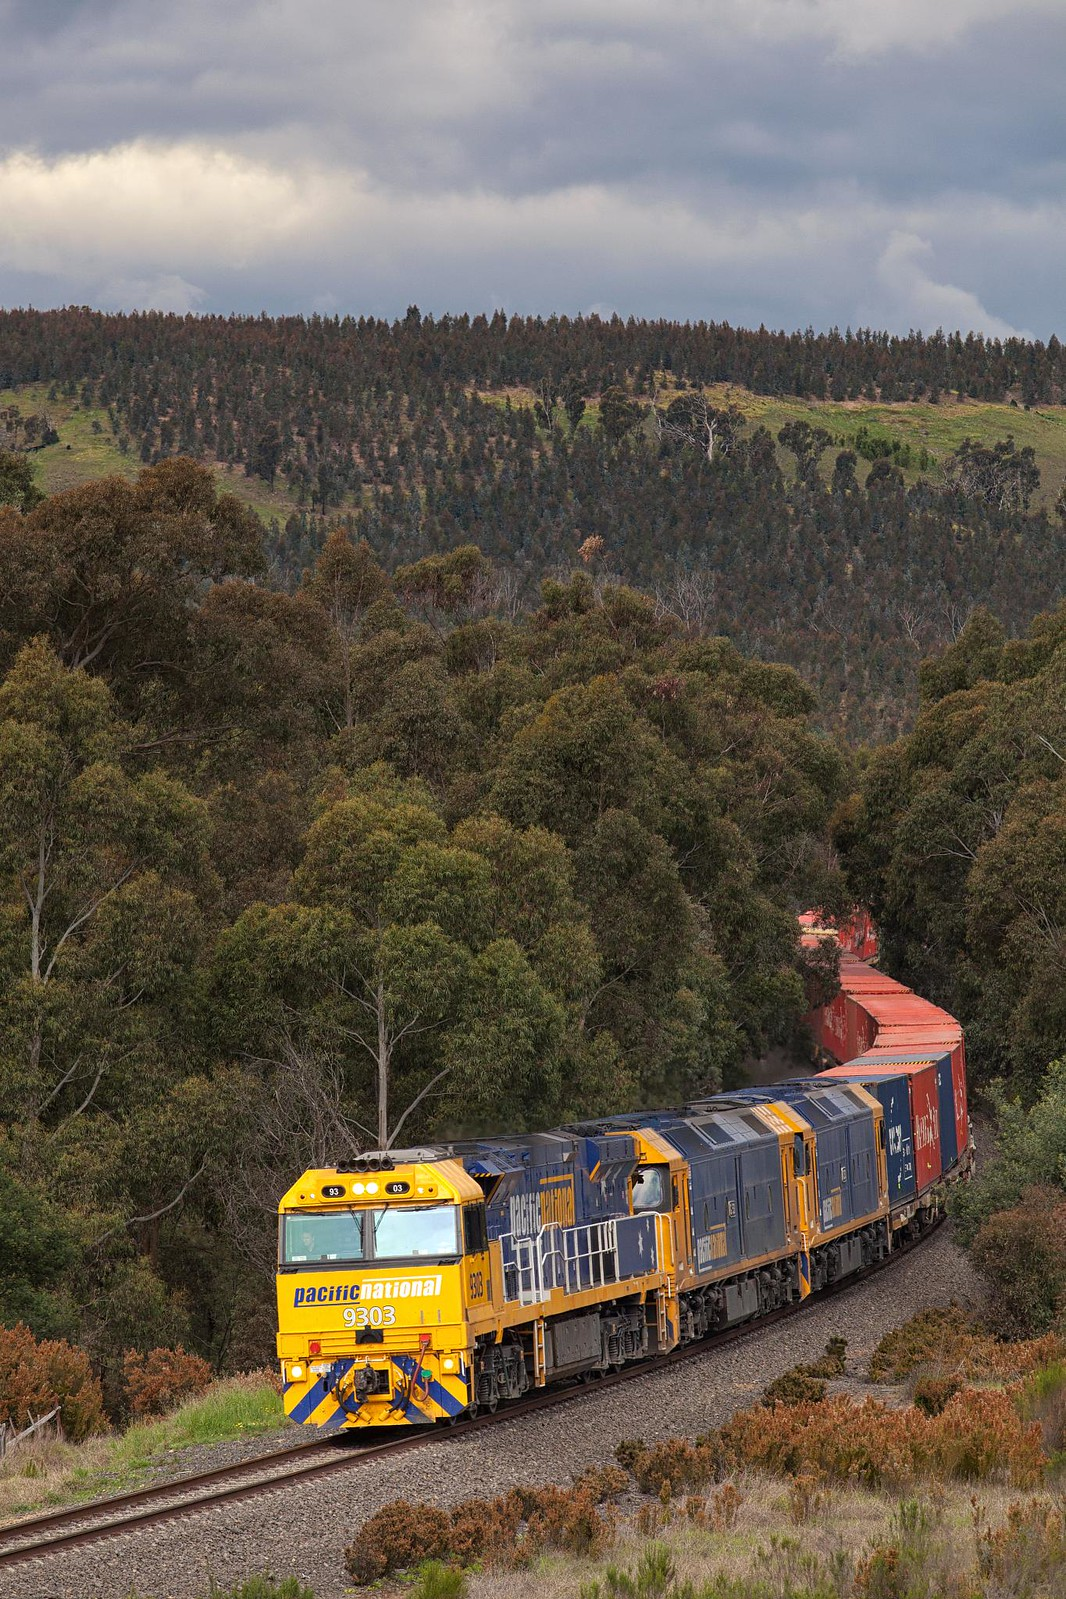 9303 Passing Kilmore East by Trent